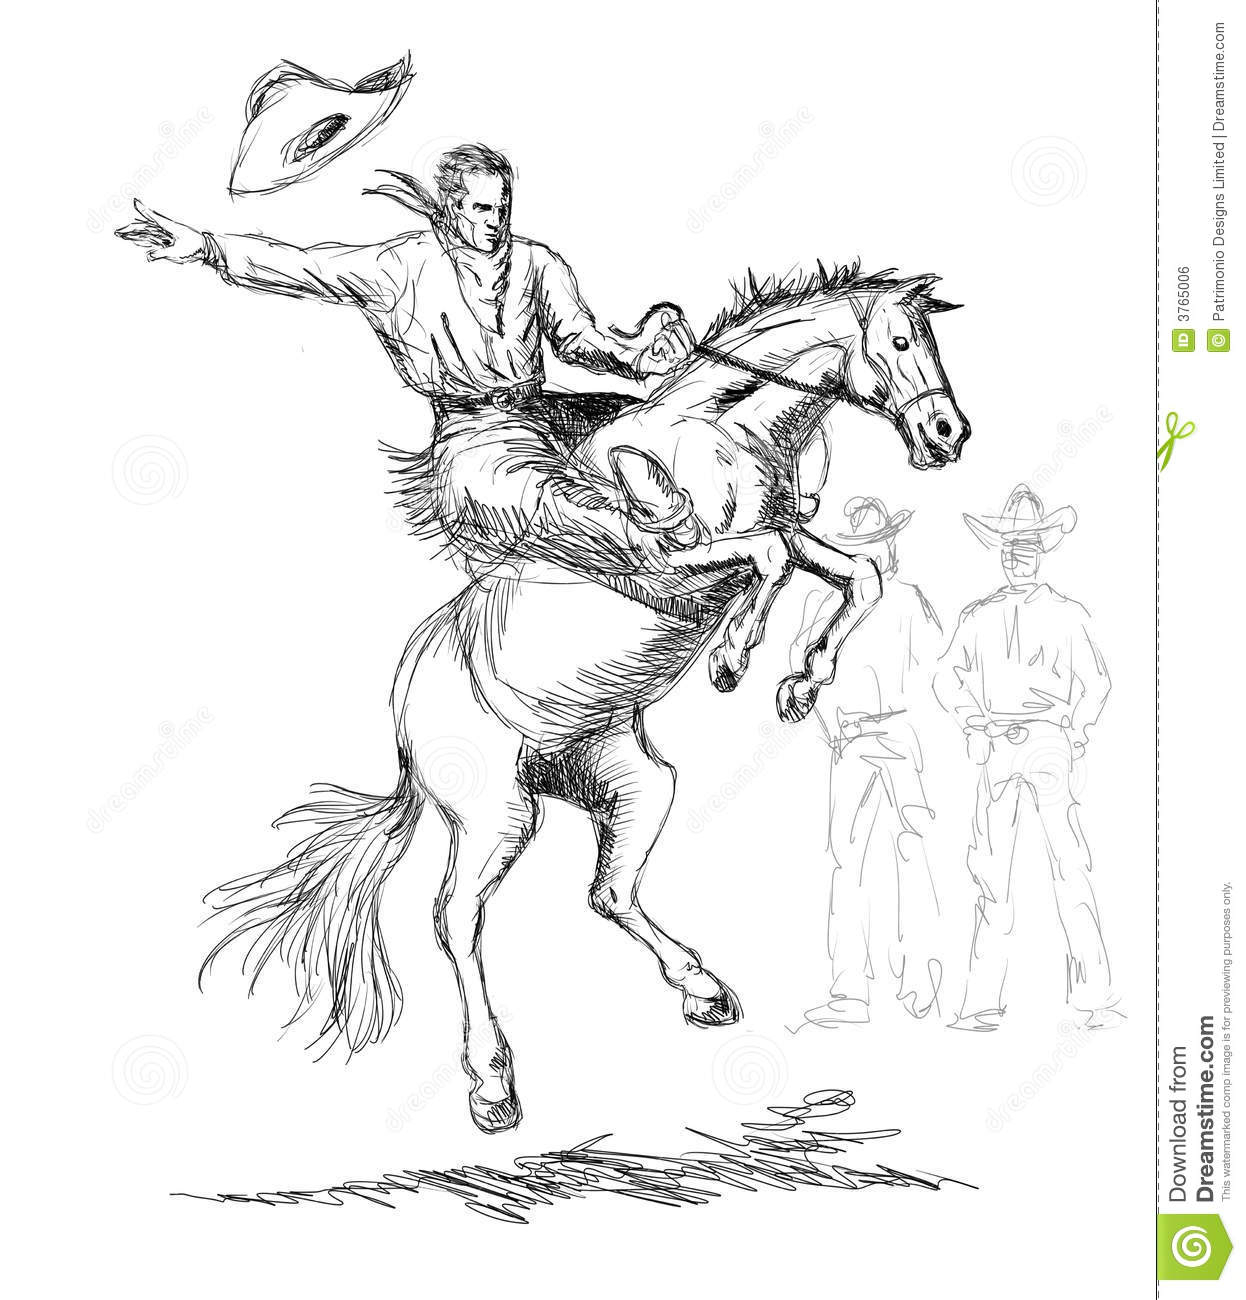 1246x1300 Cowboy On A Horse Drawing Cowboy On Horse Drawing 5066 Imgflash